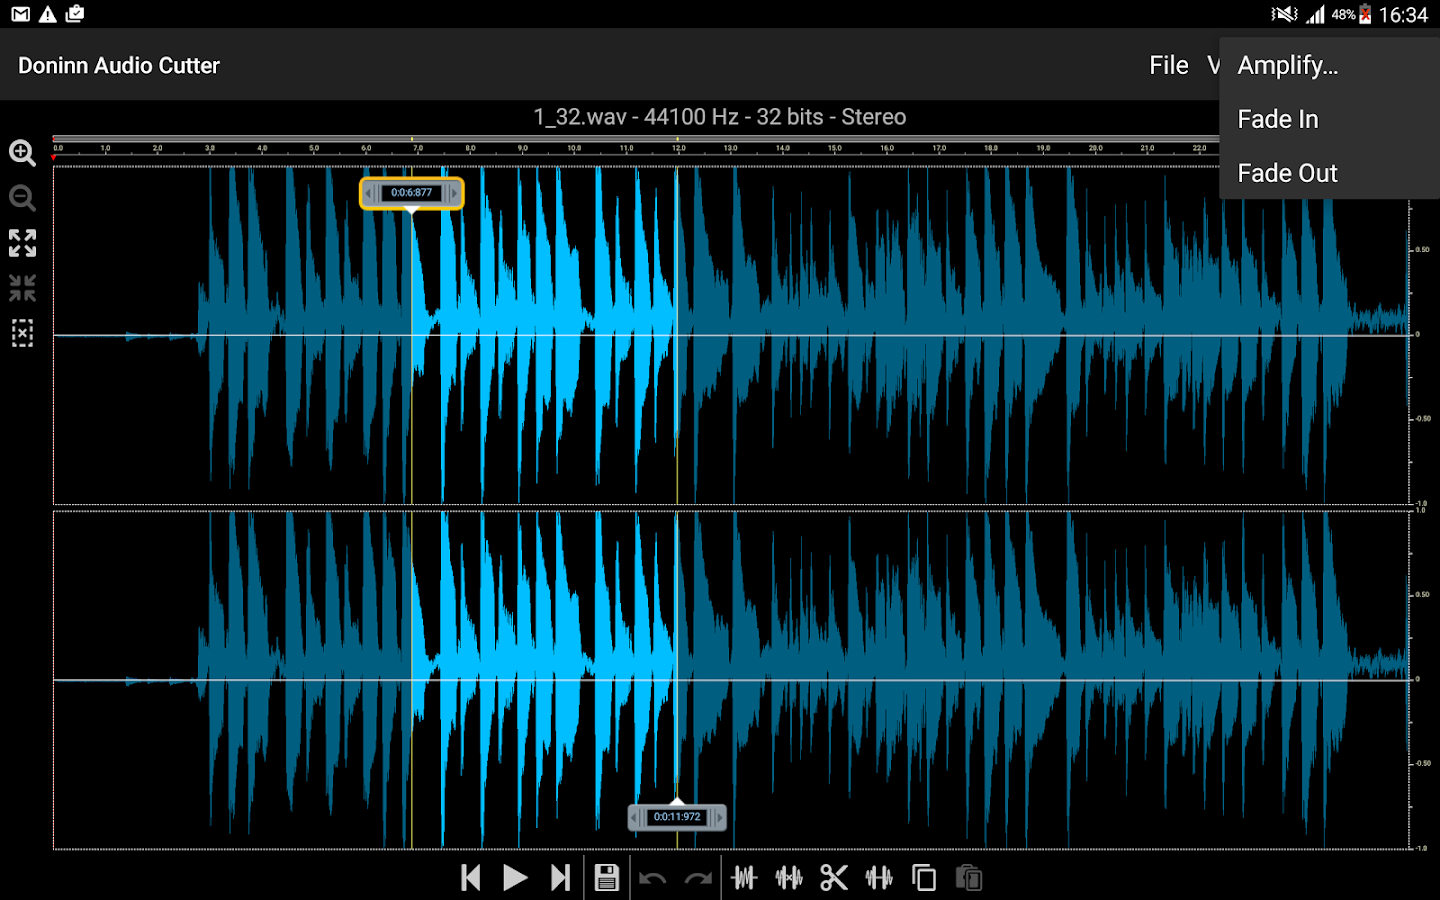 Doninn Audio Cutter Screenshot 11